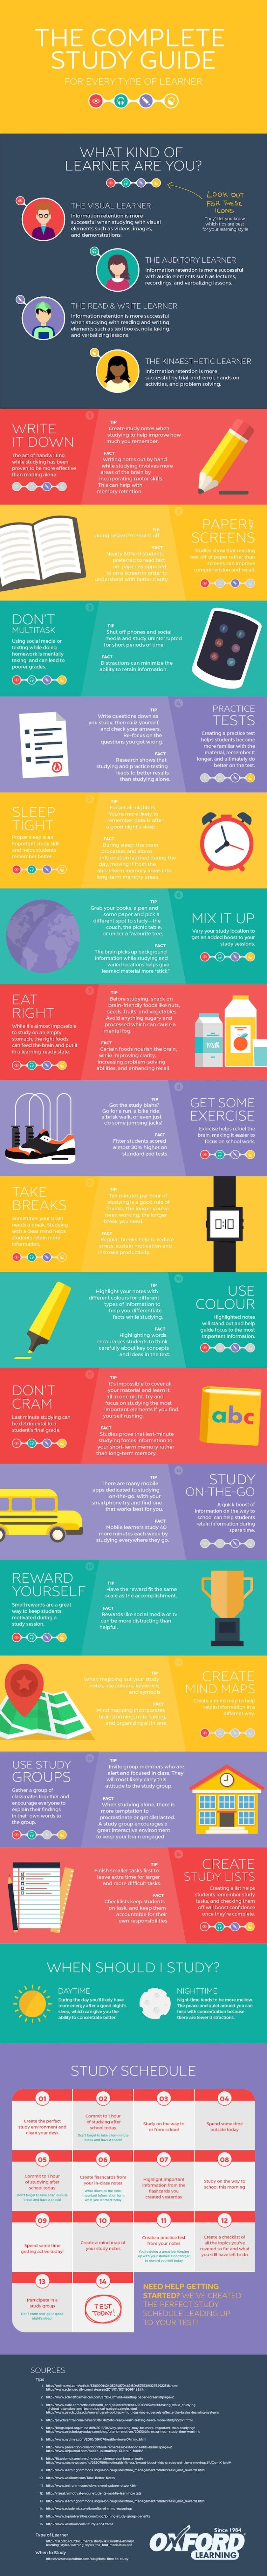 Studying How to Study [Infographic] | College, School and School hacks